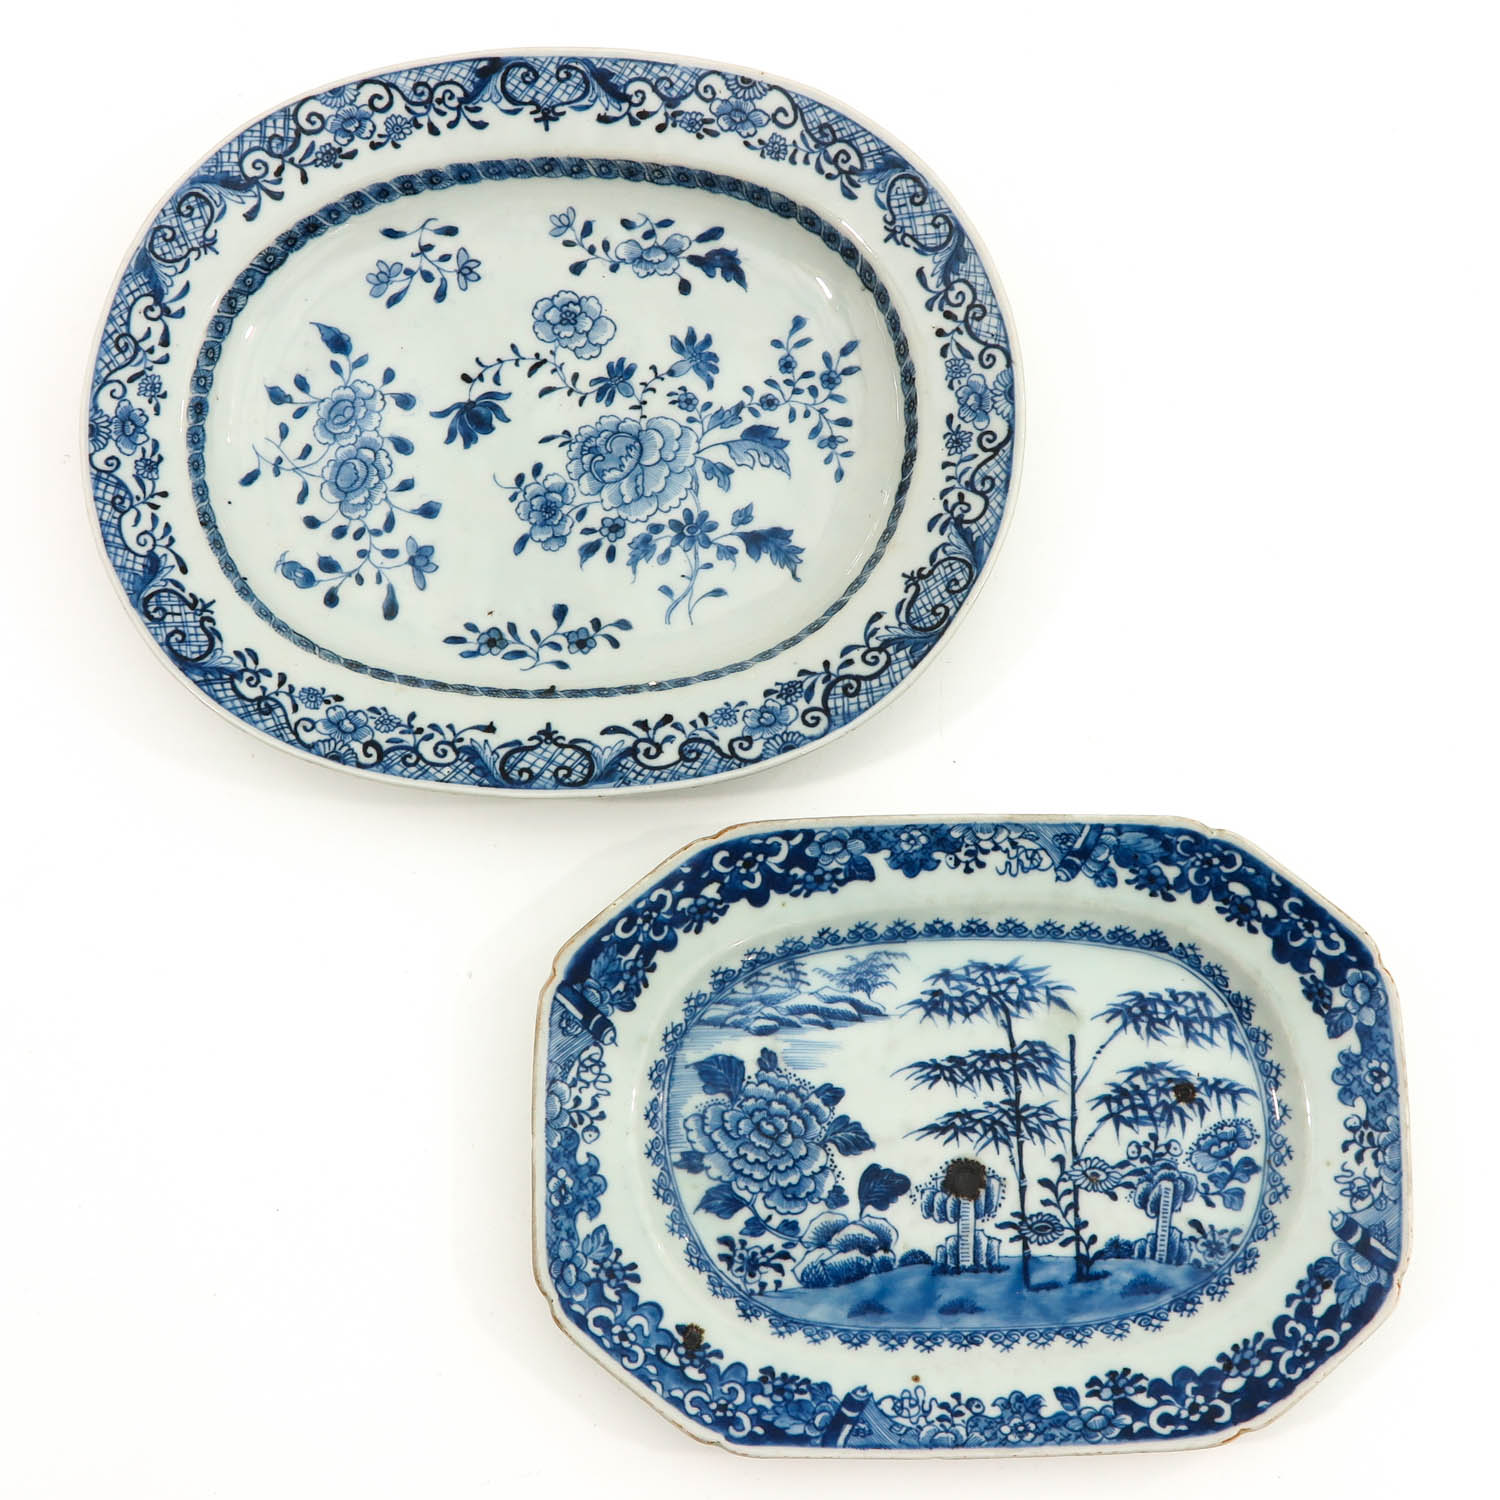 A Lot of 2 Blue and White Trays